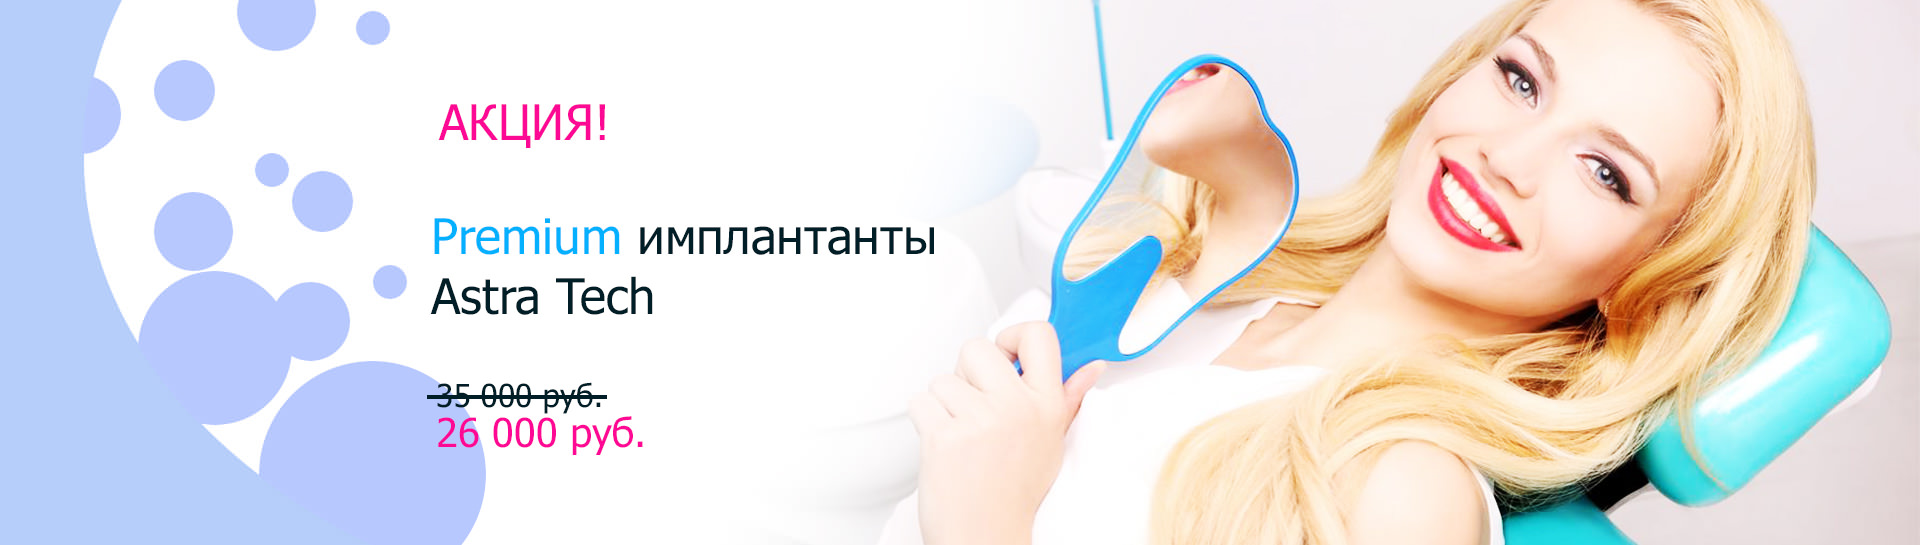 https://denta-maryino.ru/wp-content/uploads/Astra.jpg 1x, https://denta-maryino.ru/wp-content/cache/thumb/31/975495da361d331_1320x545.jpg 1320w